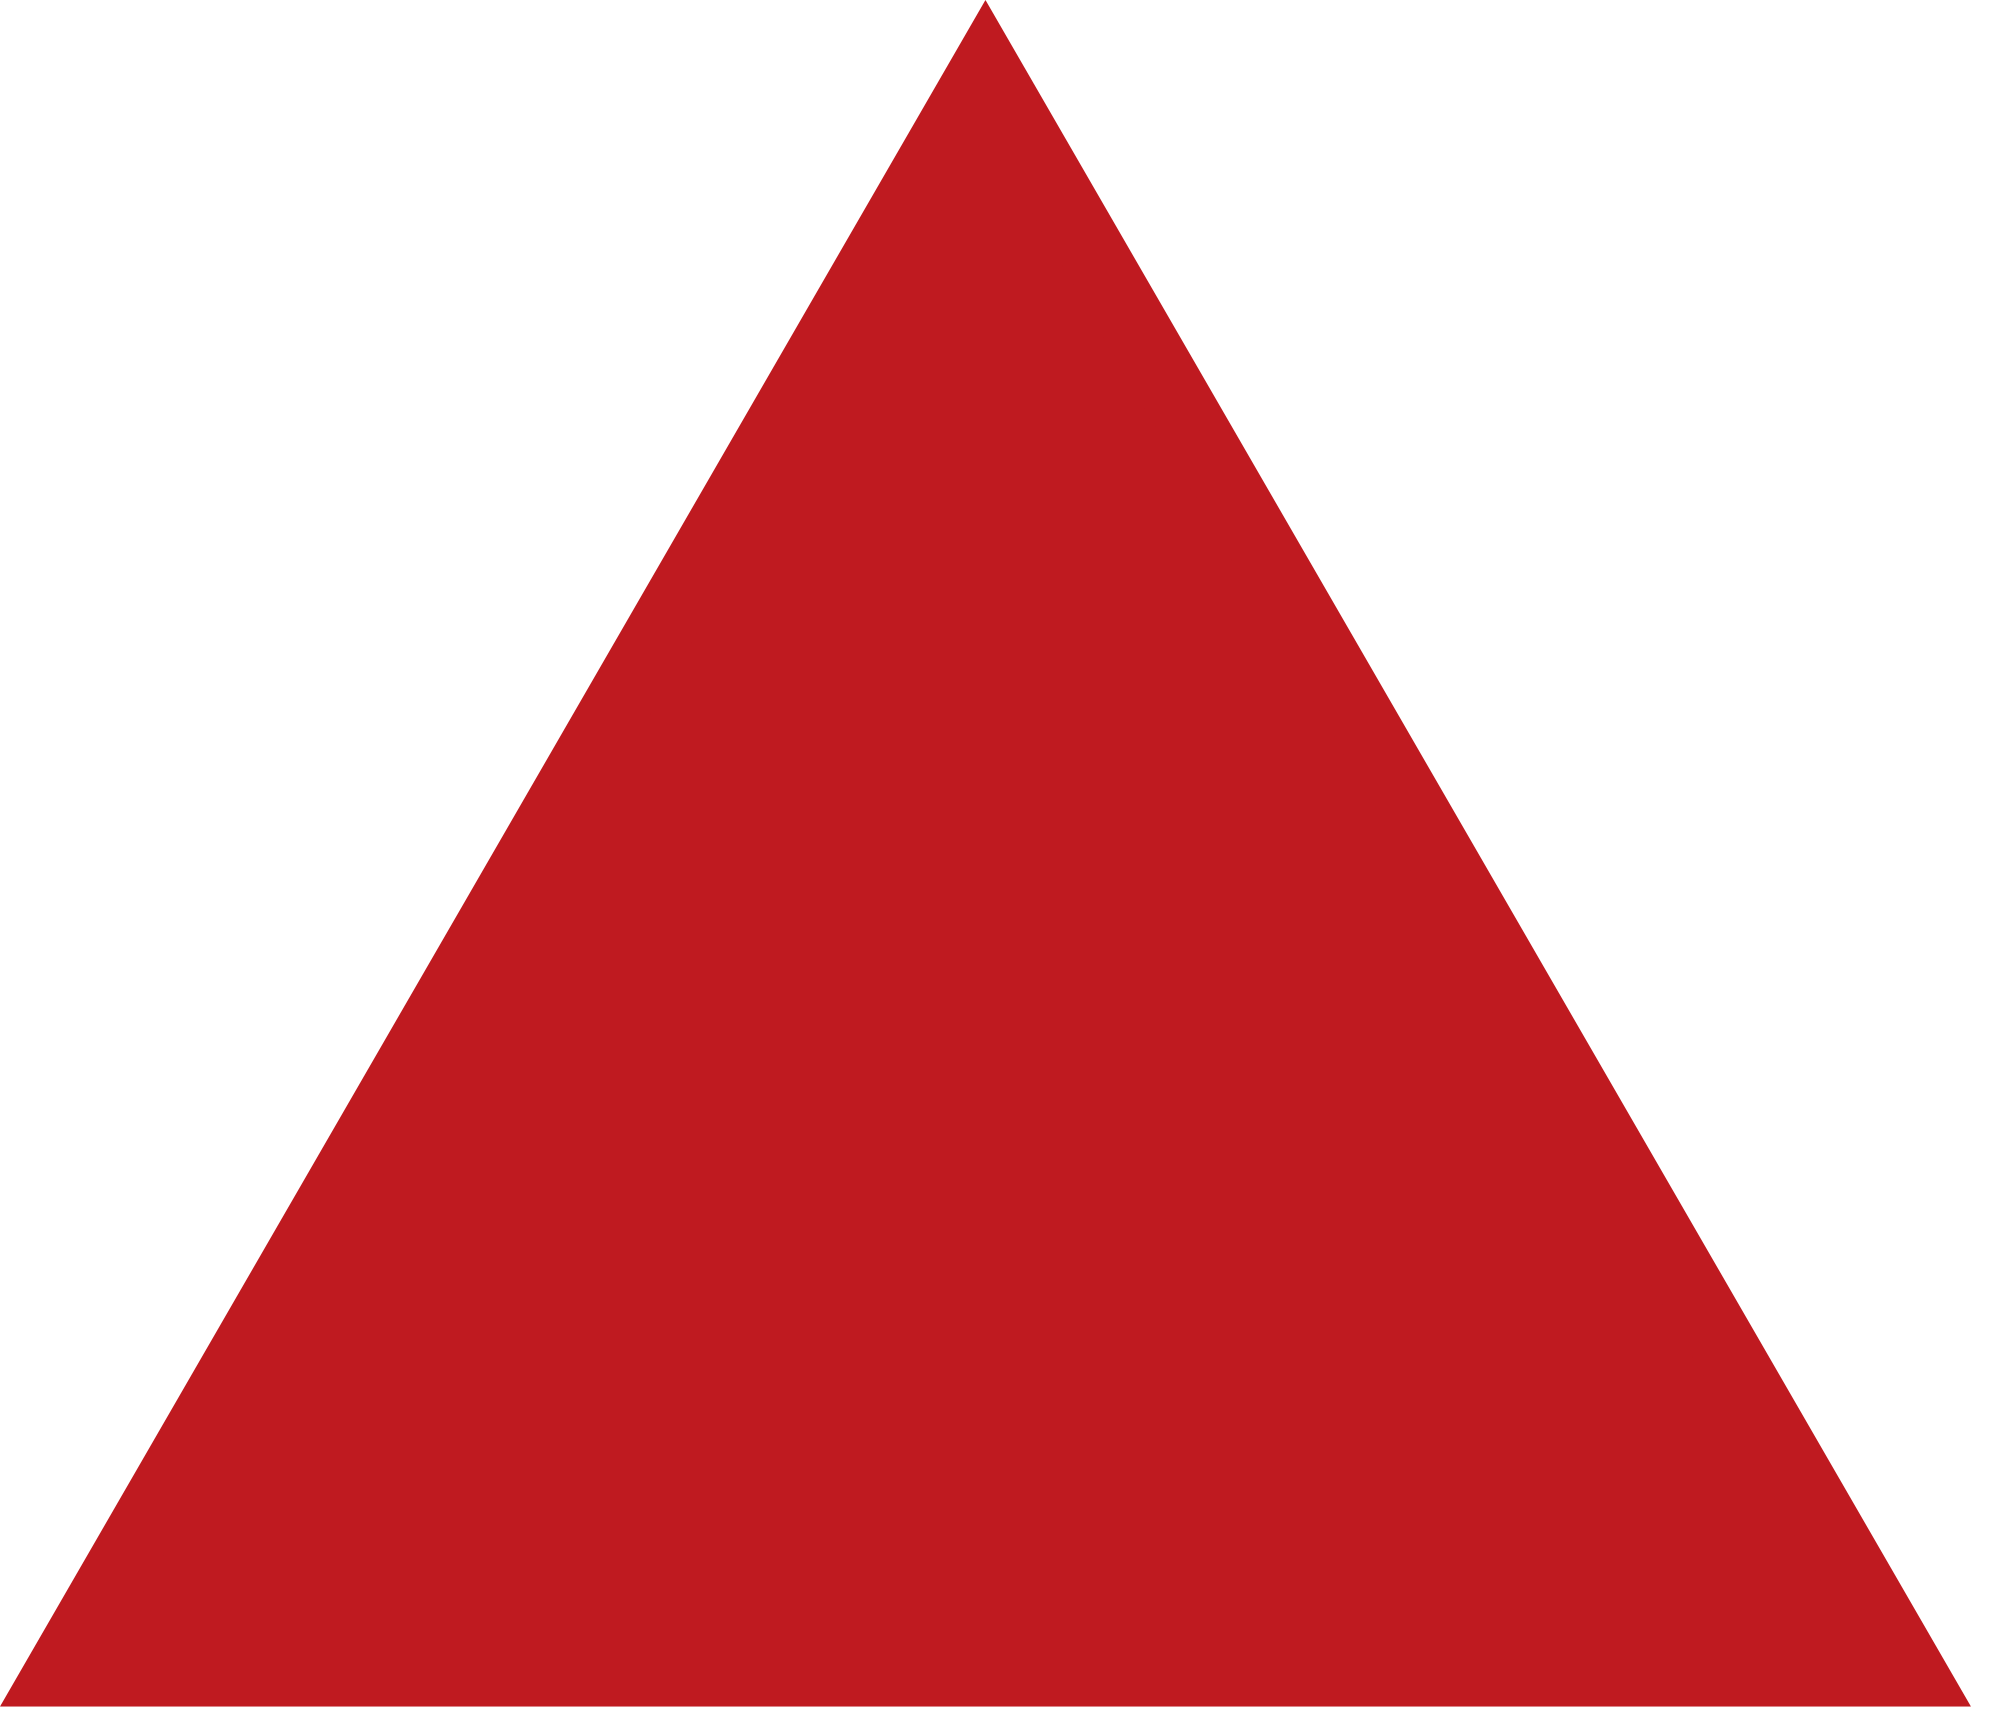 Equilateral triangle png. File red r gb